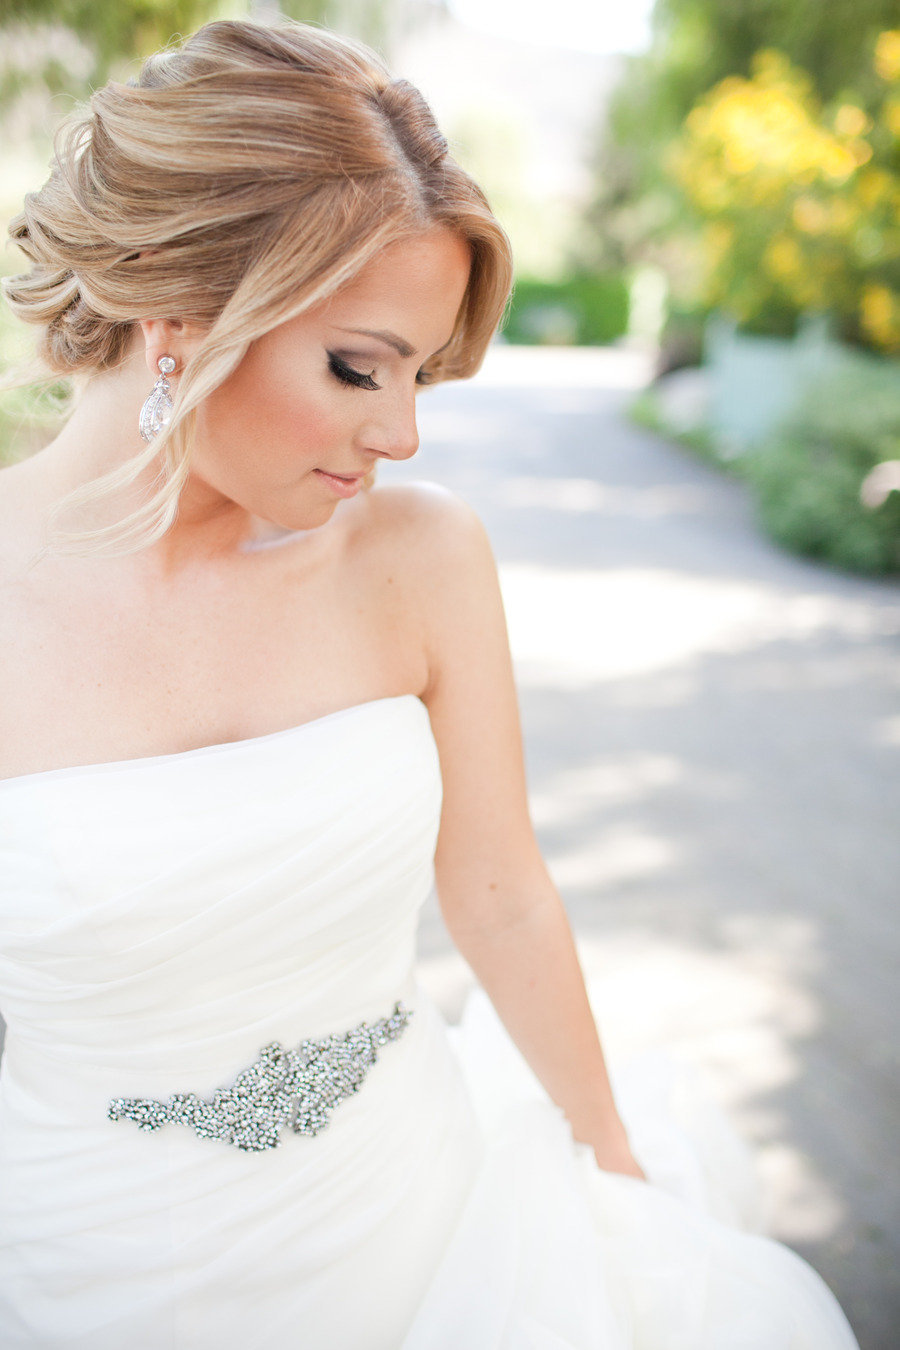 Blonde Bridal Updo Swept Curls.jpg